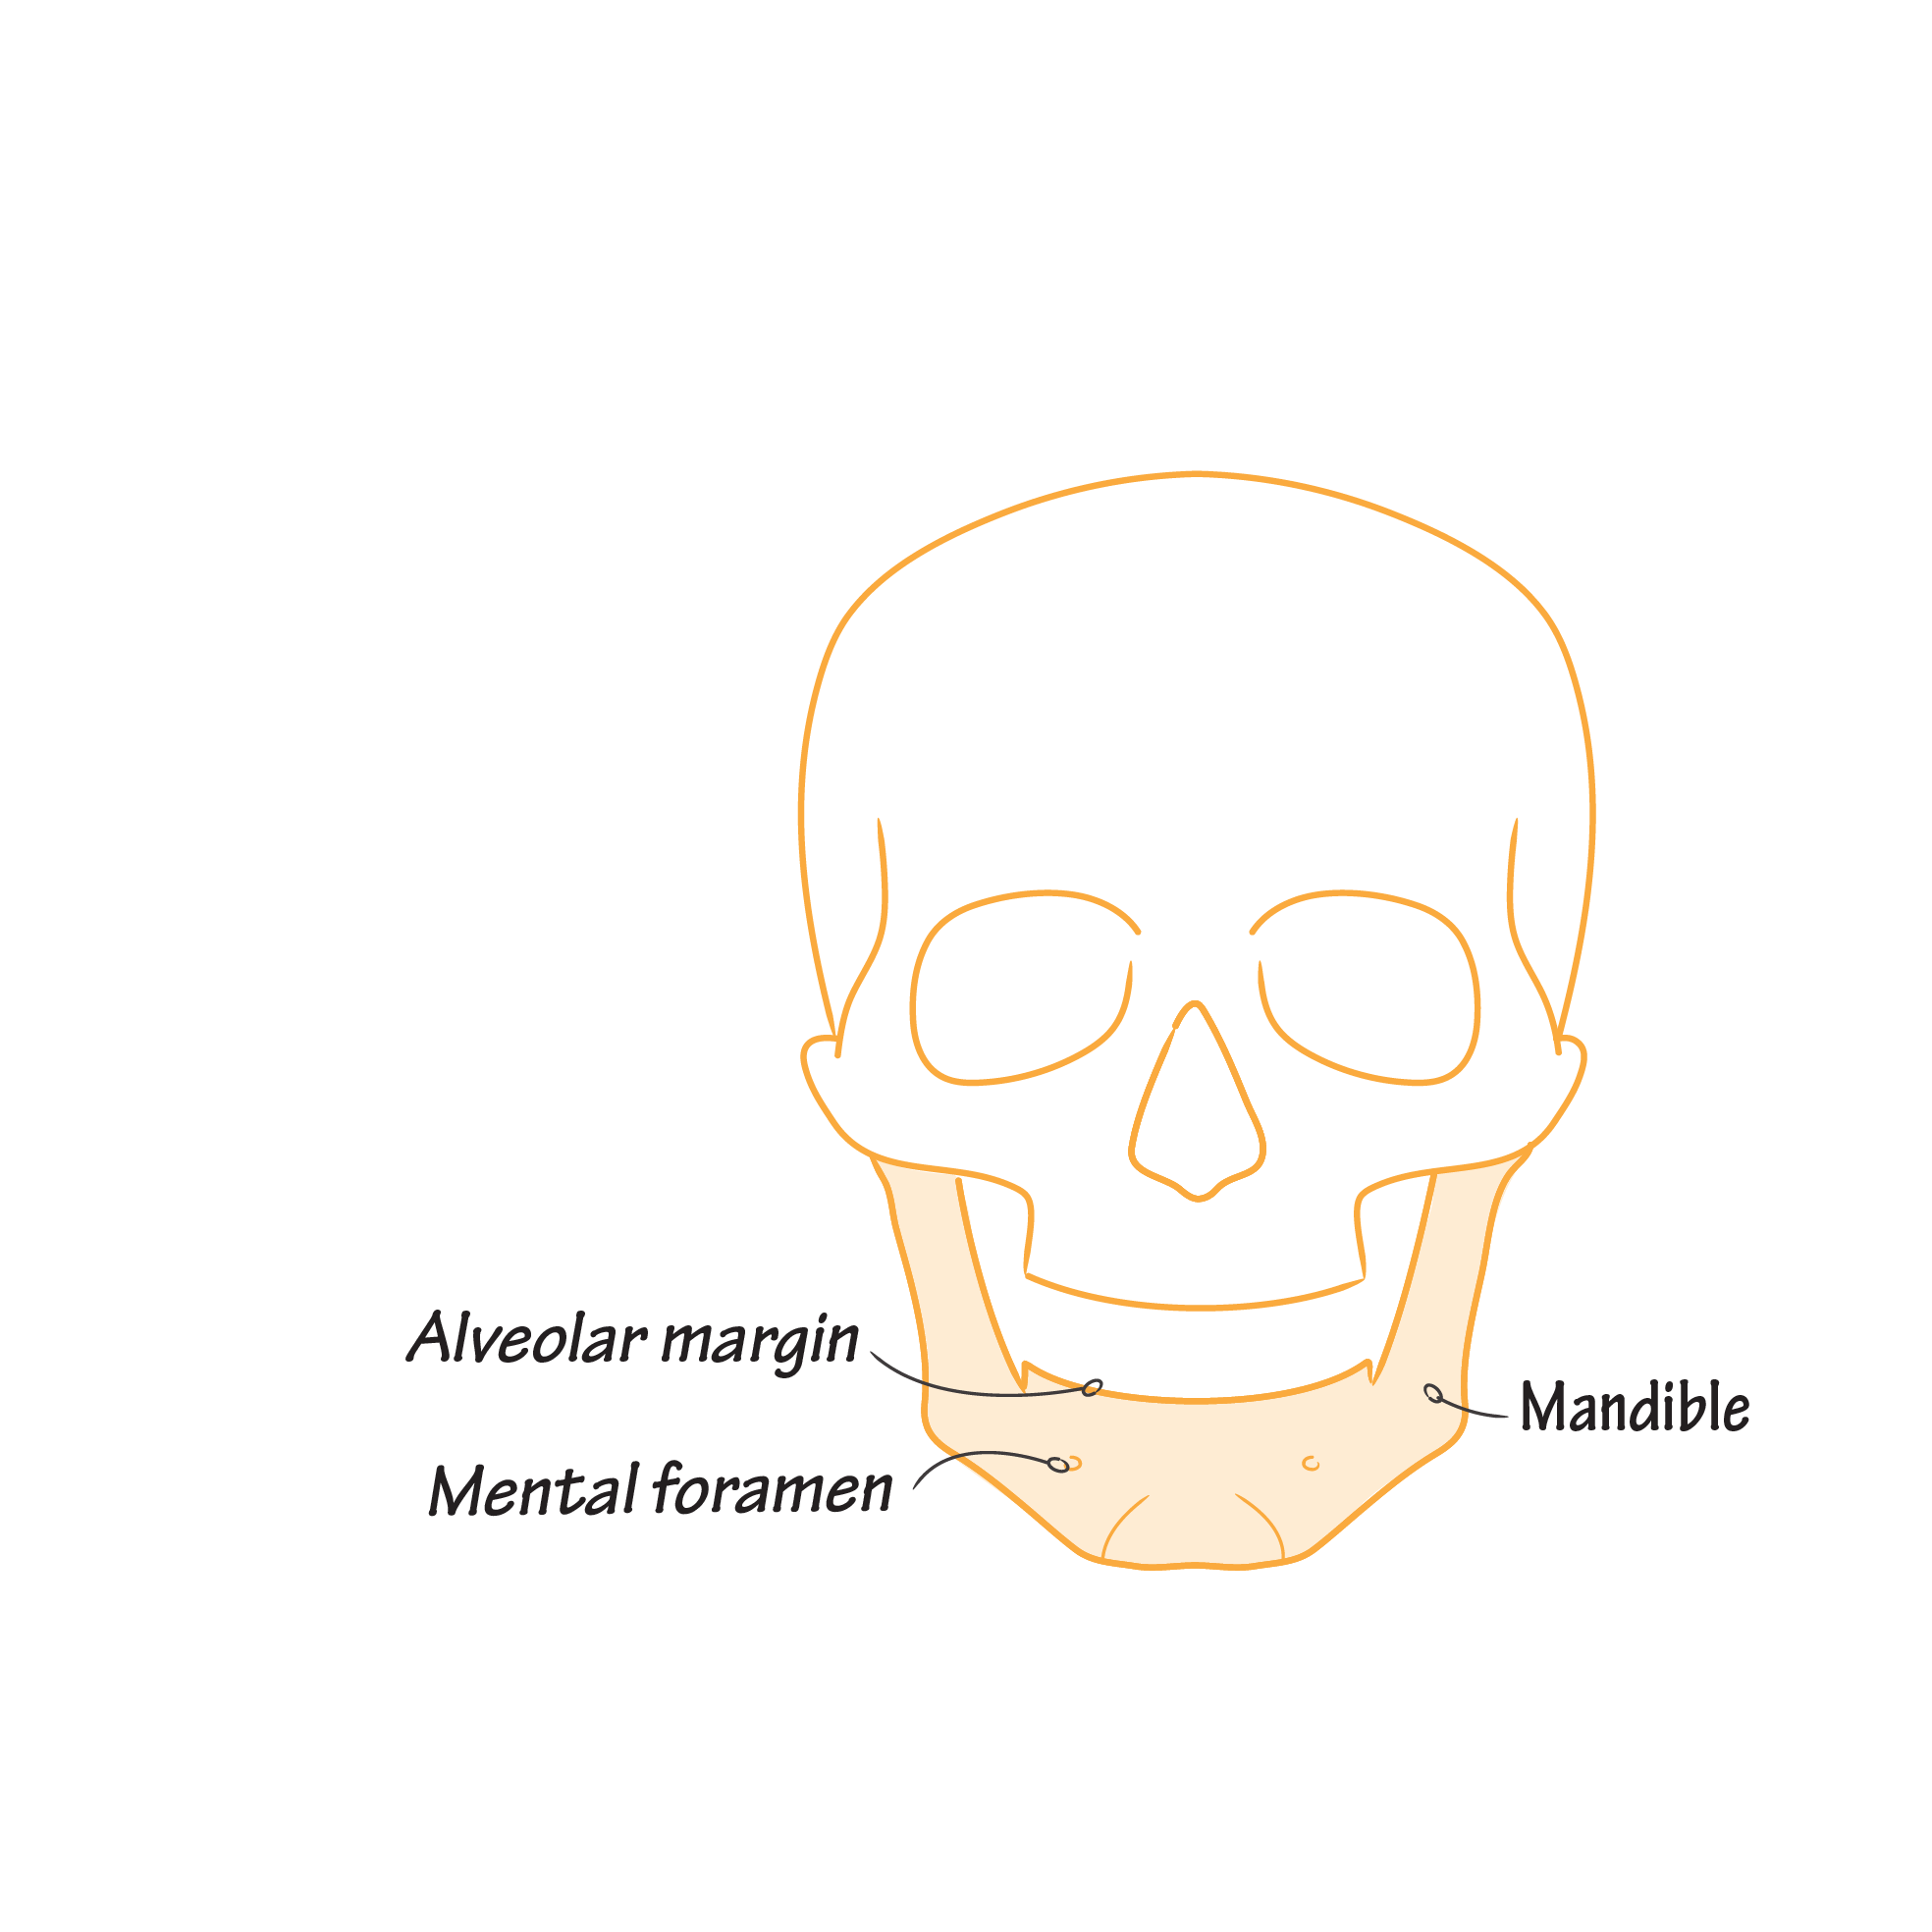 Gross Anatomy Glossary: Skull - Anterior View | Draw It to Know It